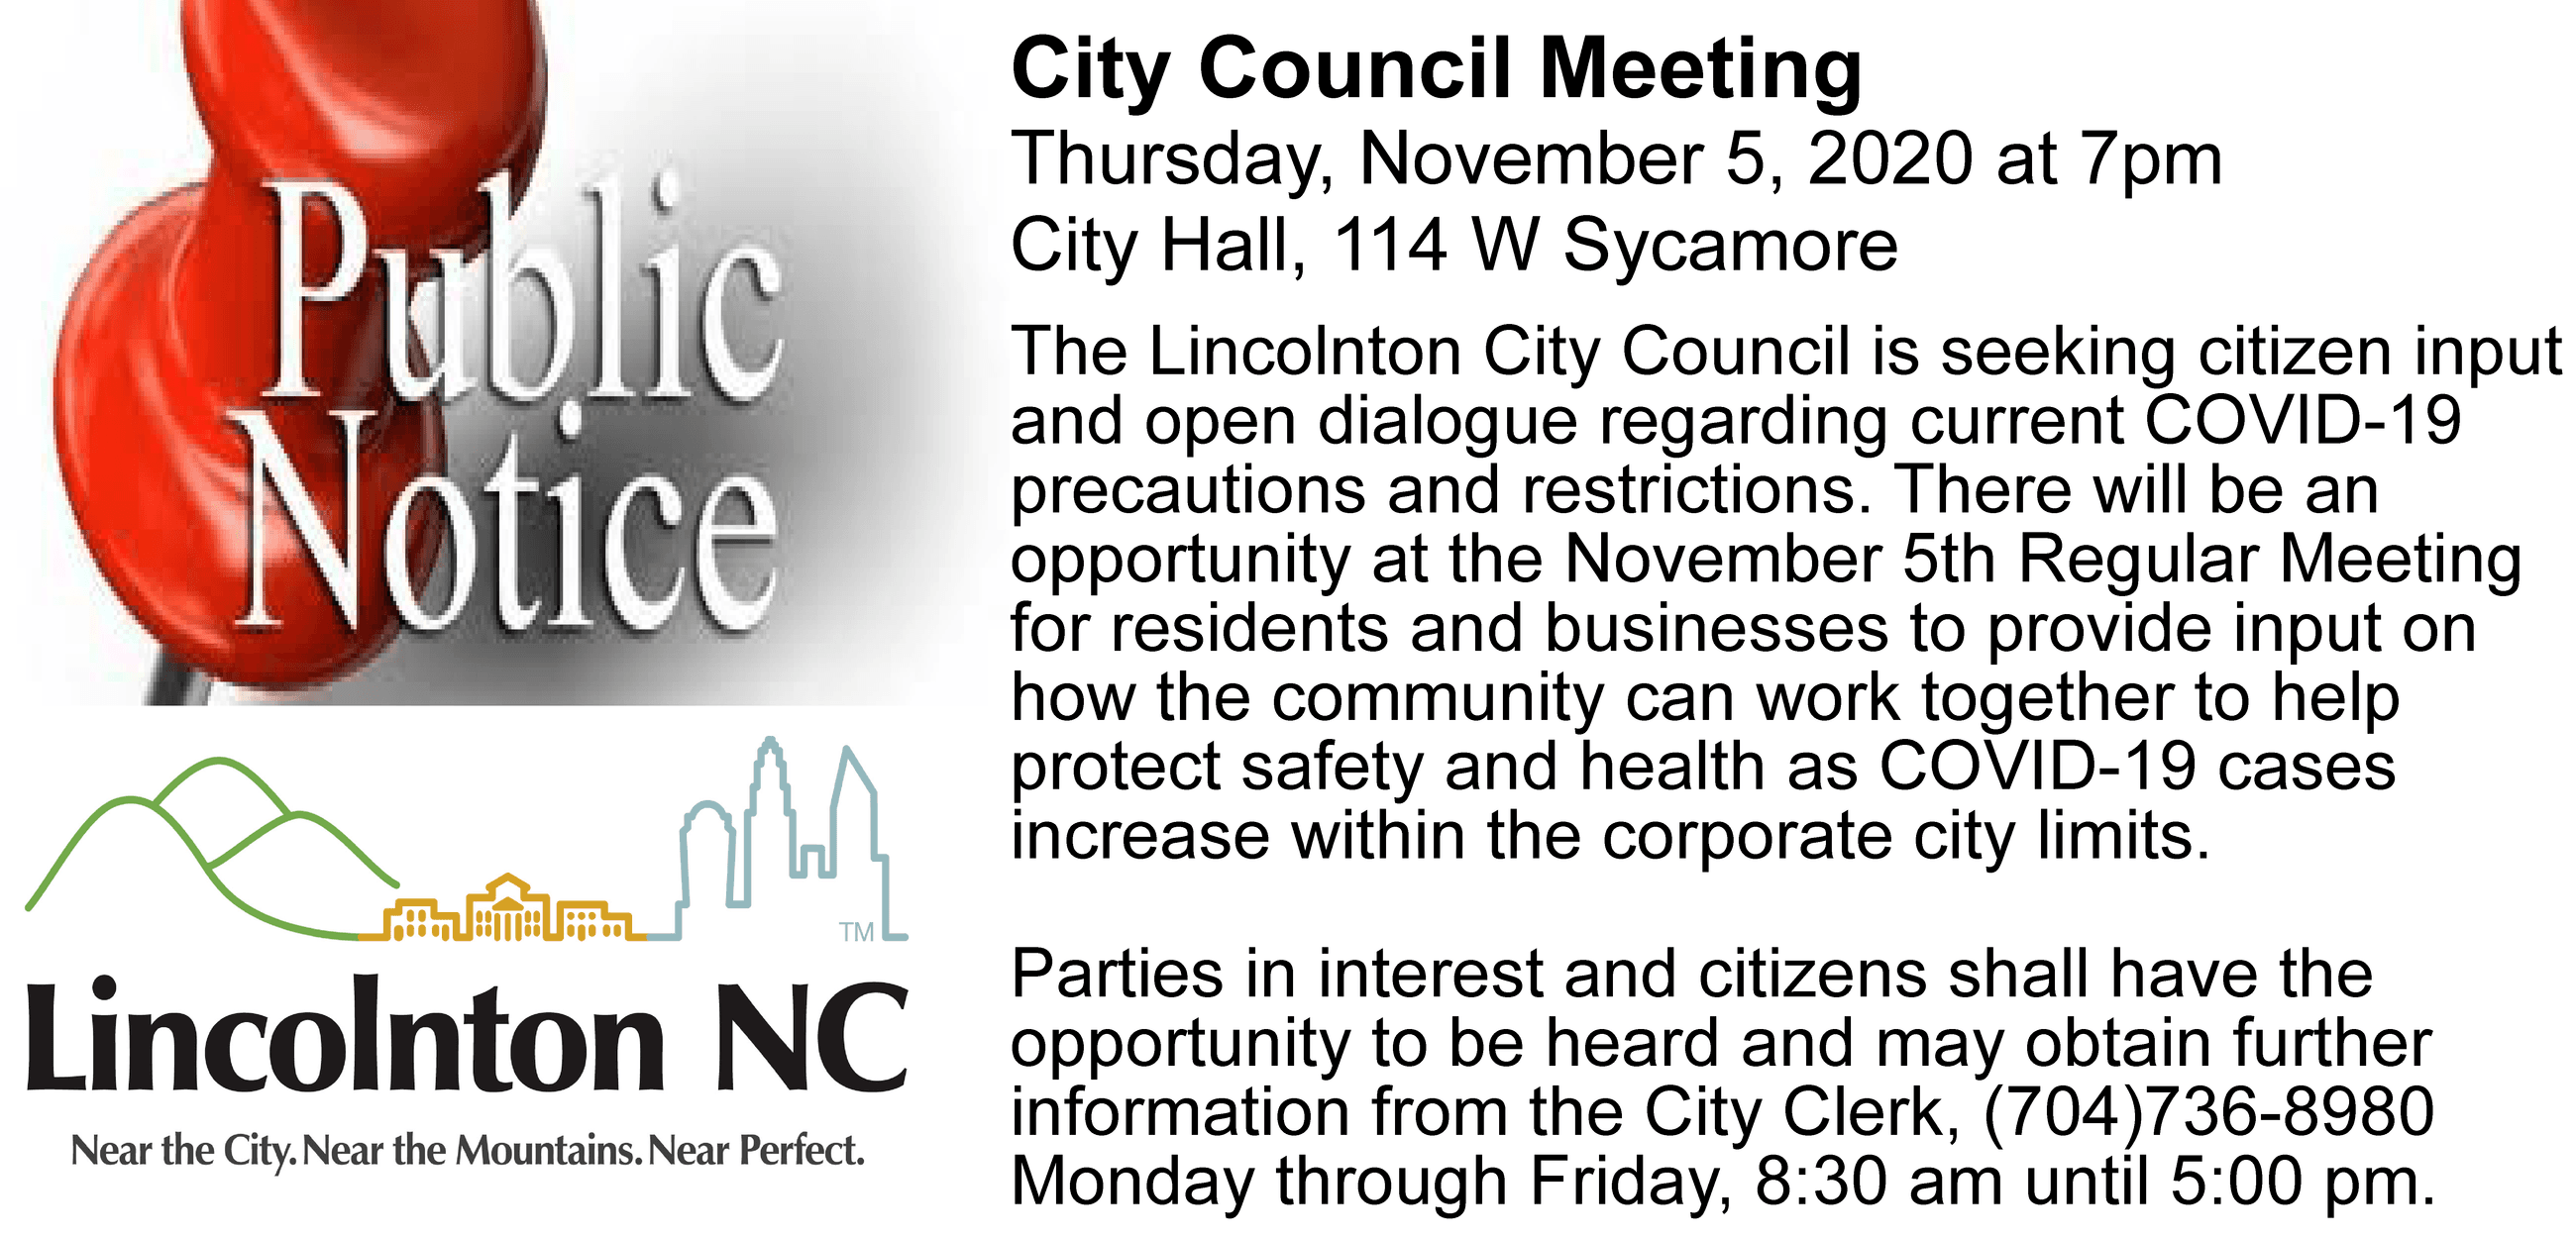 11.5.20 council mtg notice - citizen mask input